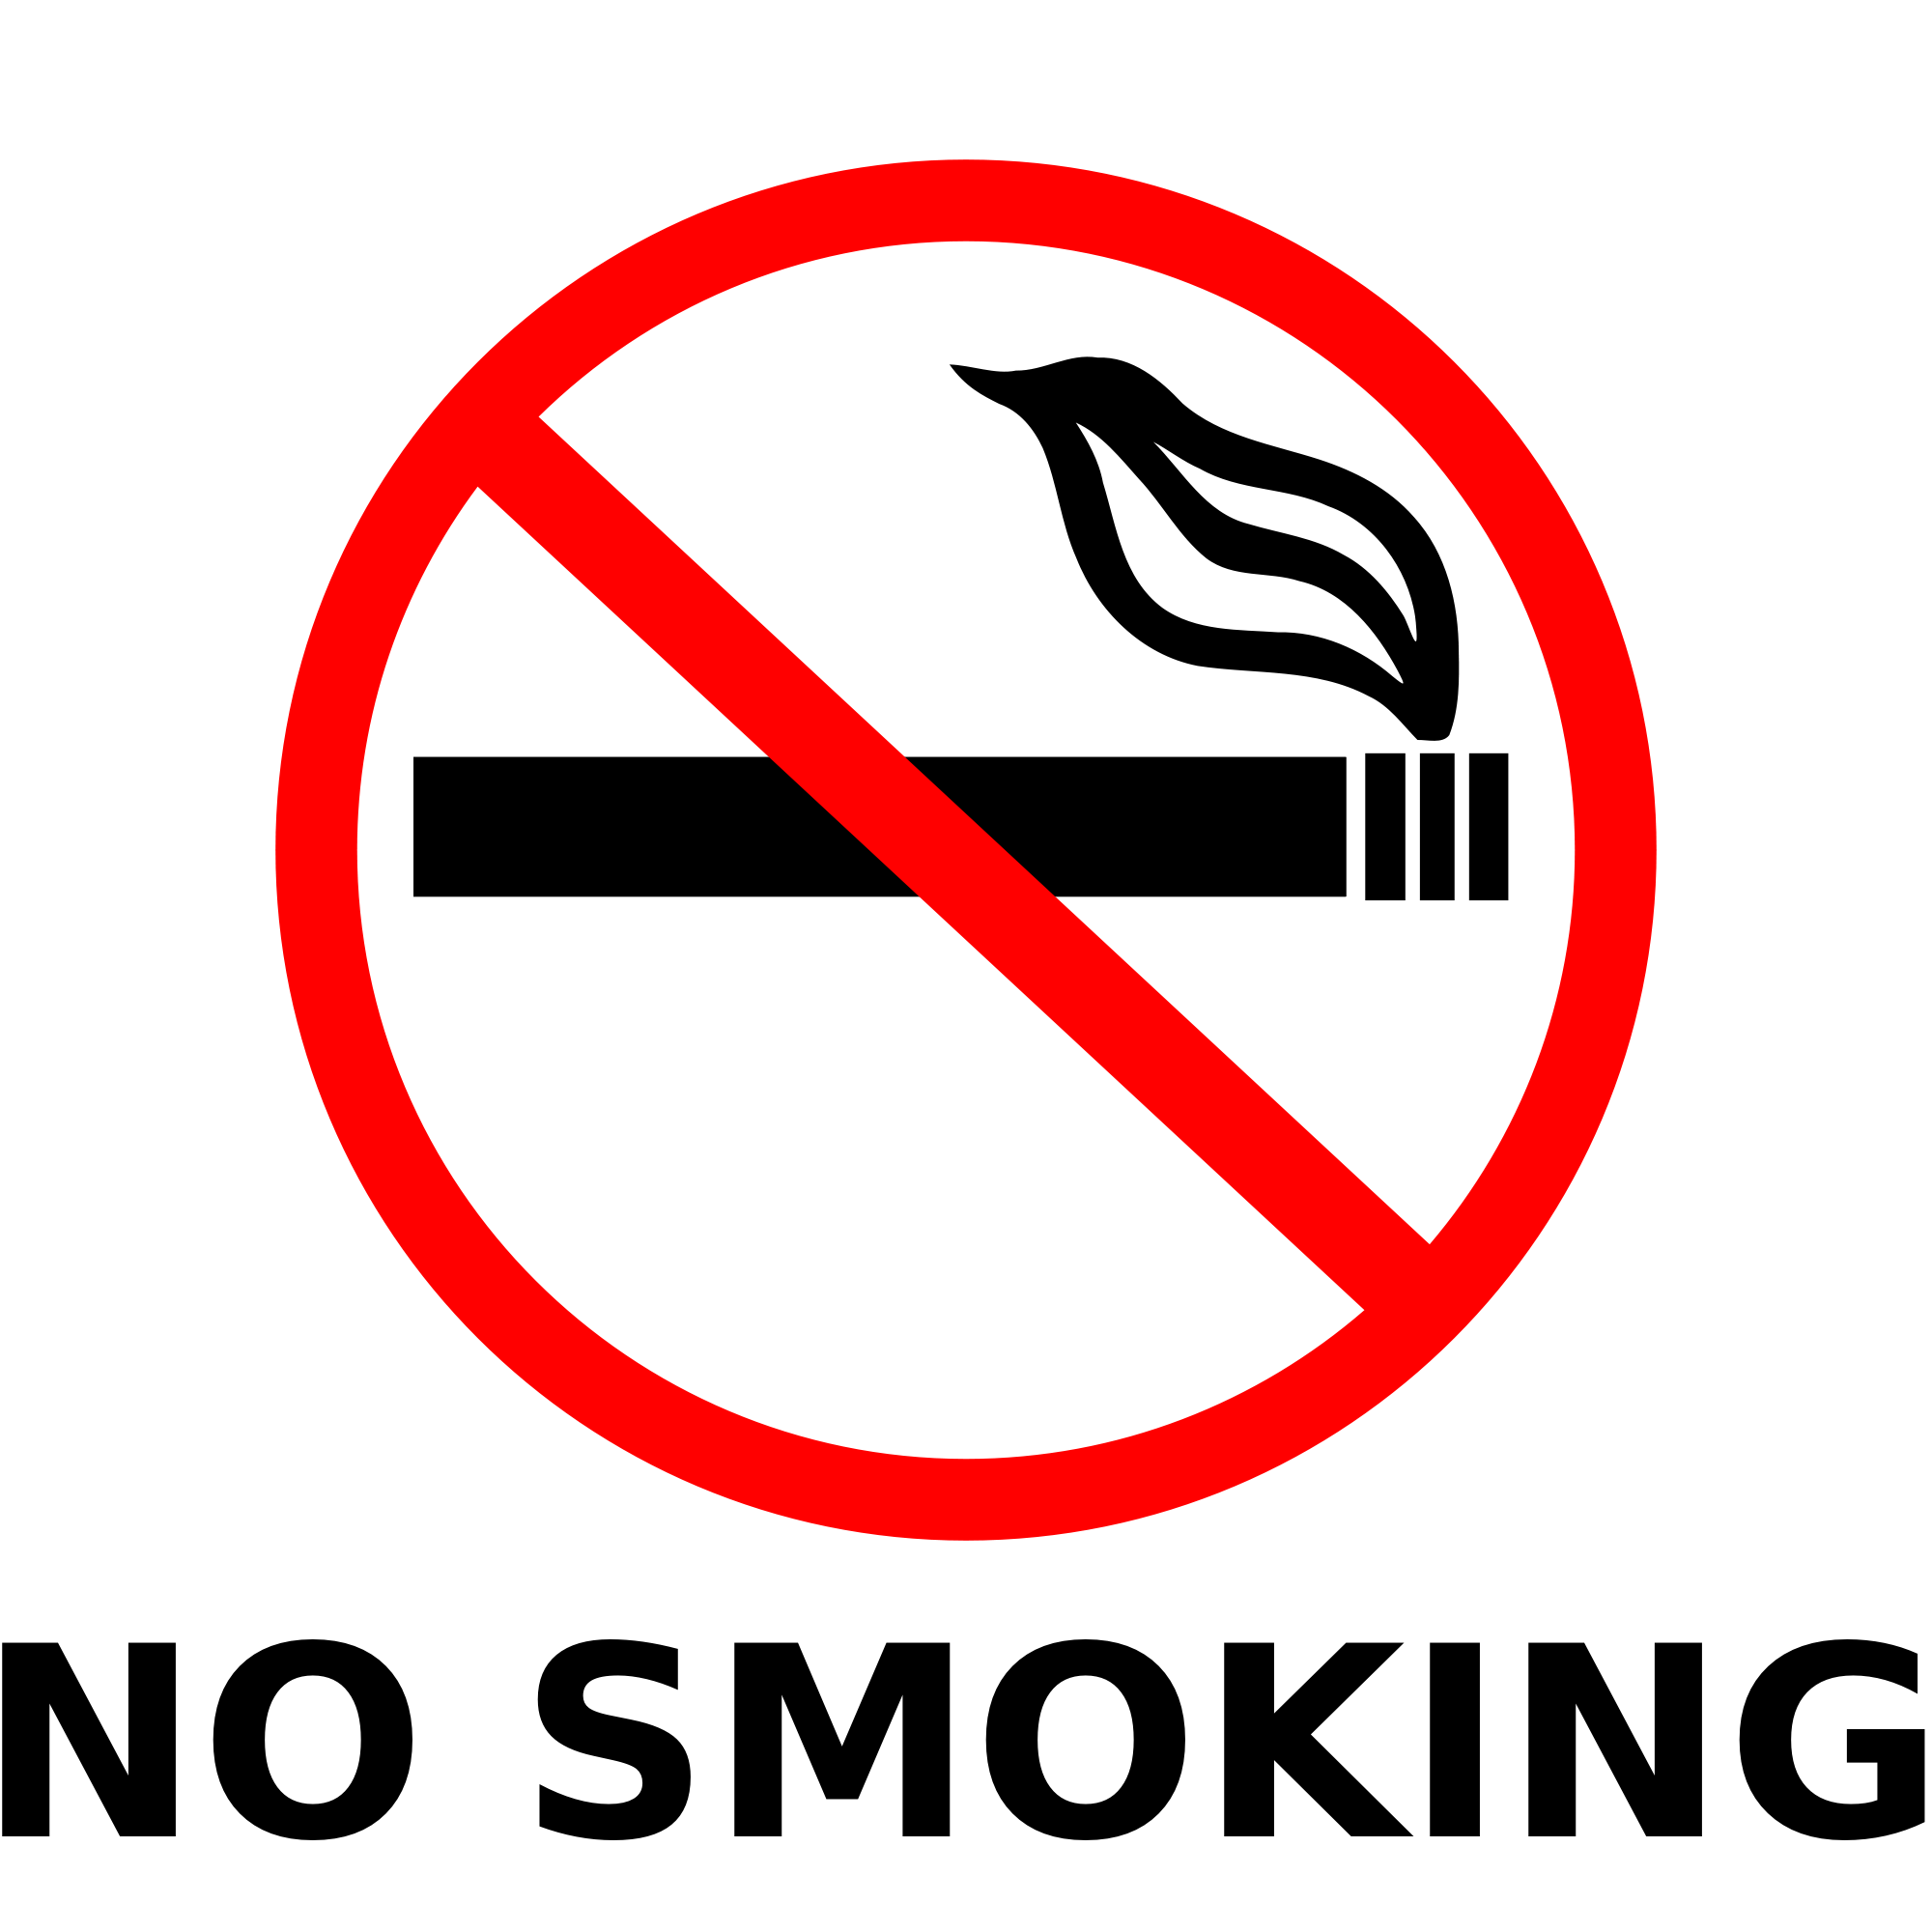 No Smoking Images Free Download - ClipArt Best